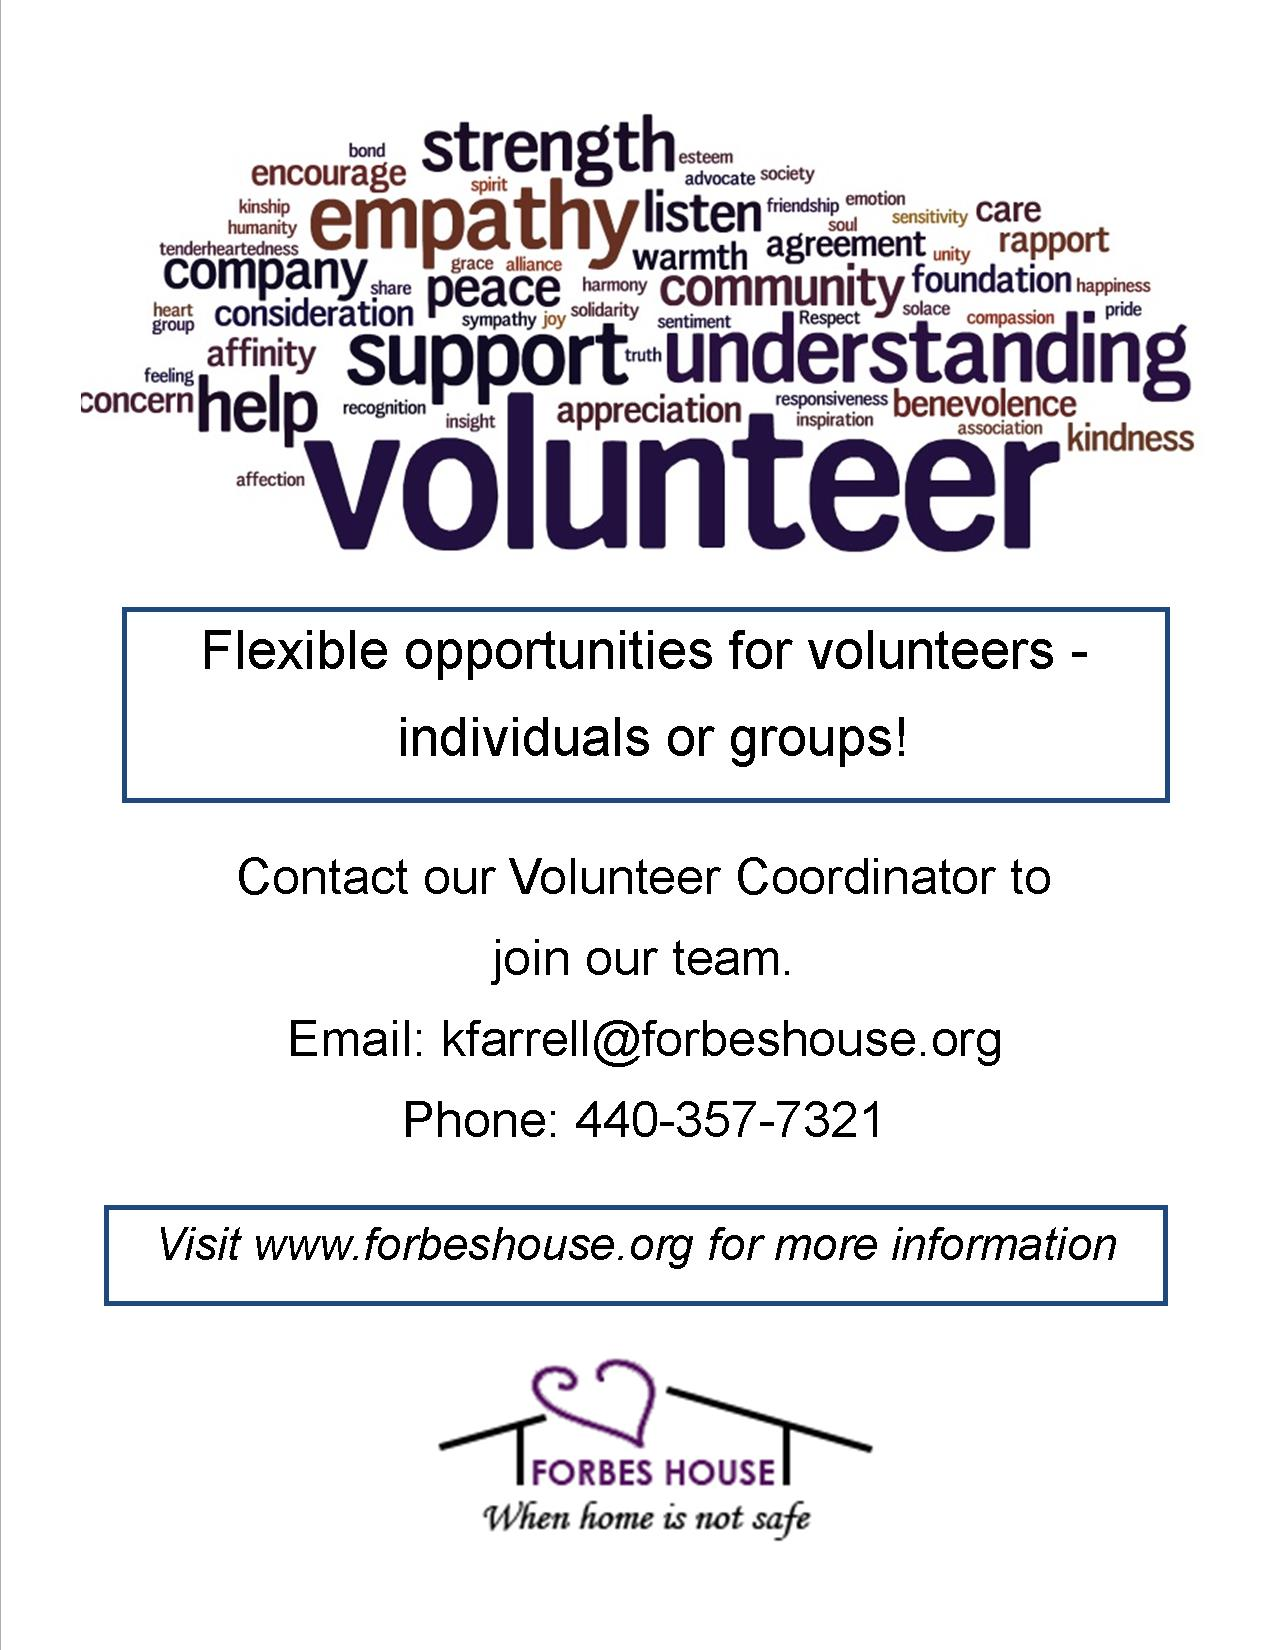 Volunteer with Forbes House